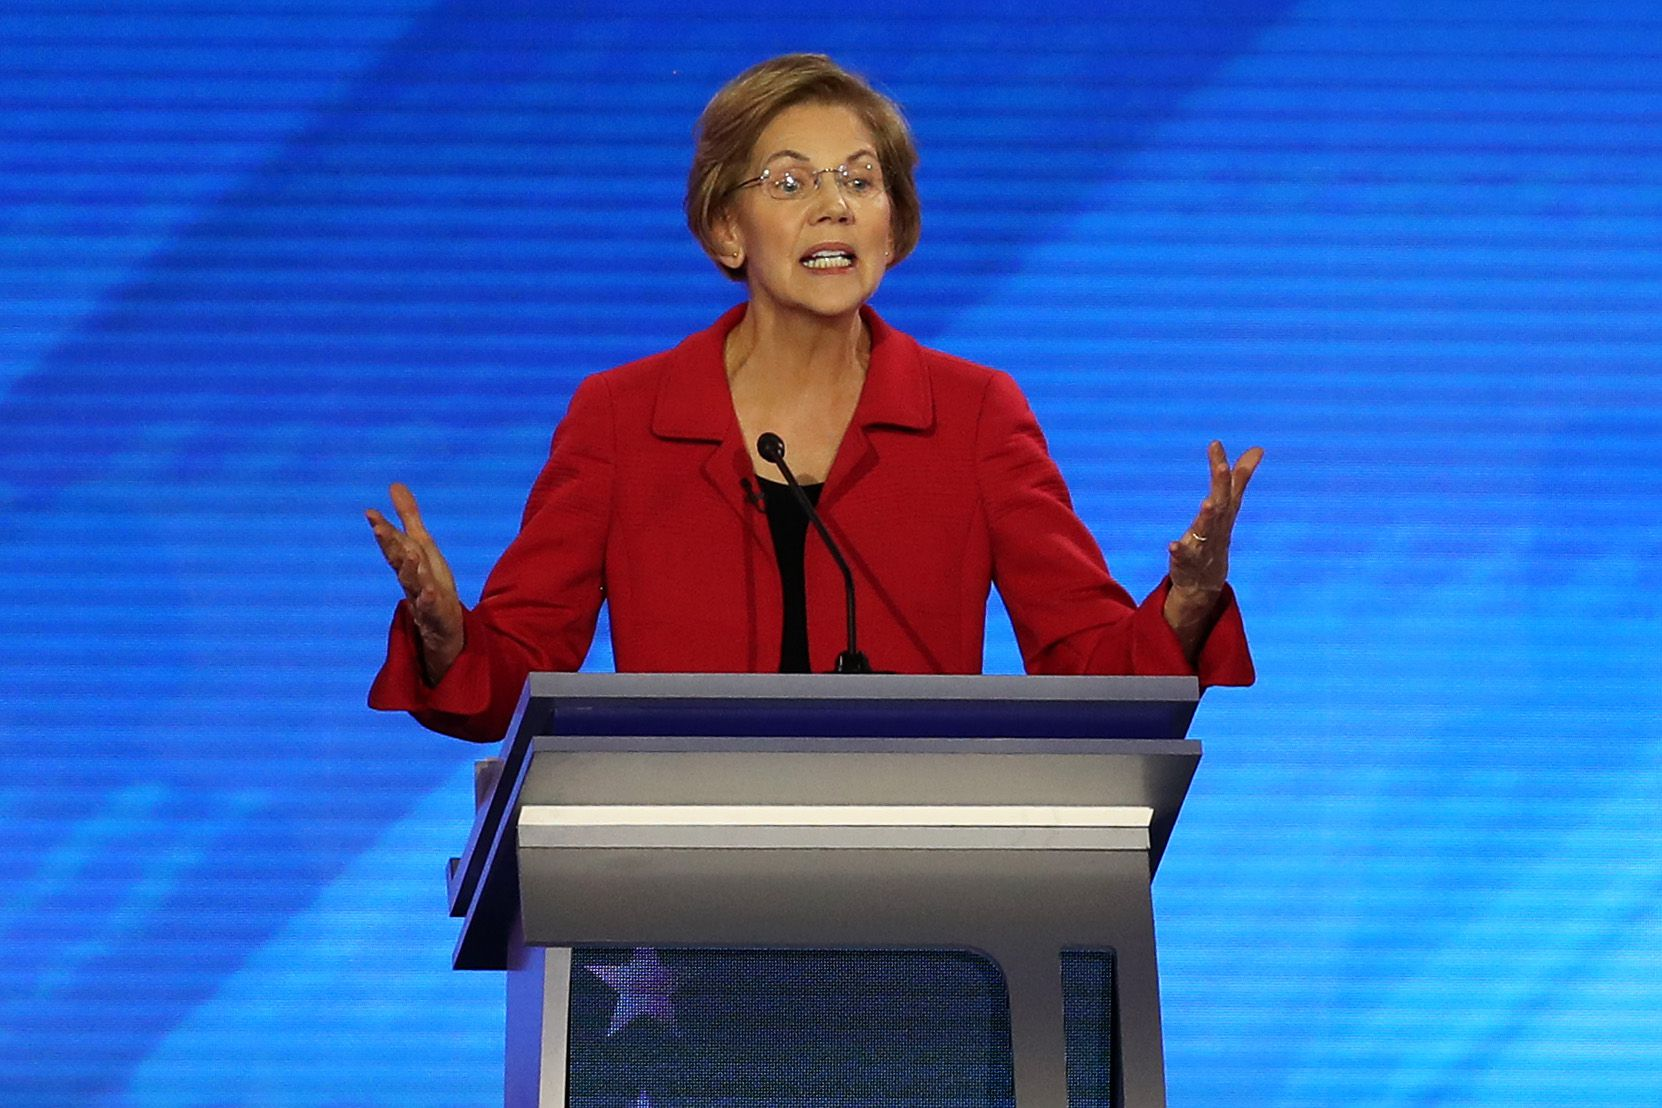 Warren: A national law should protect abortion rights - Axios